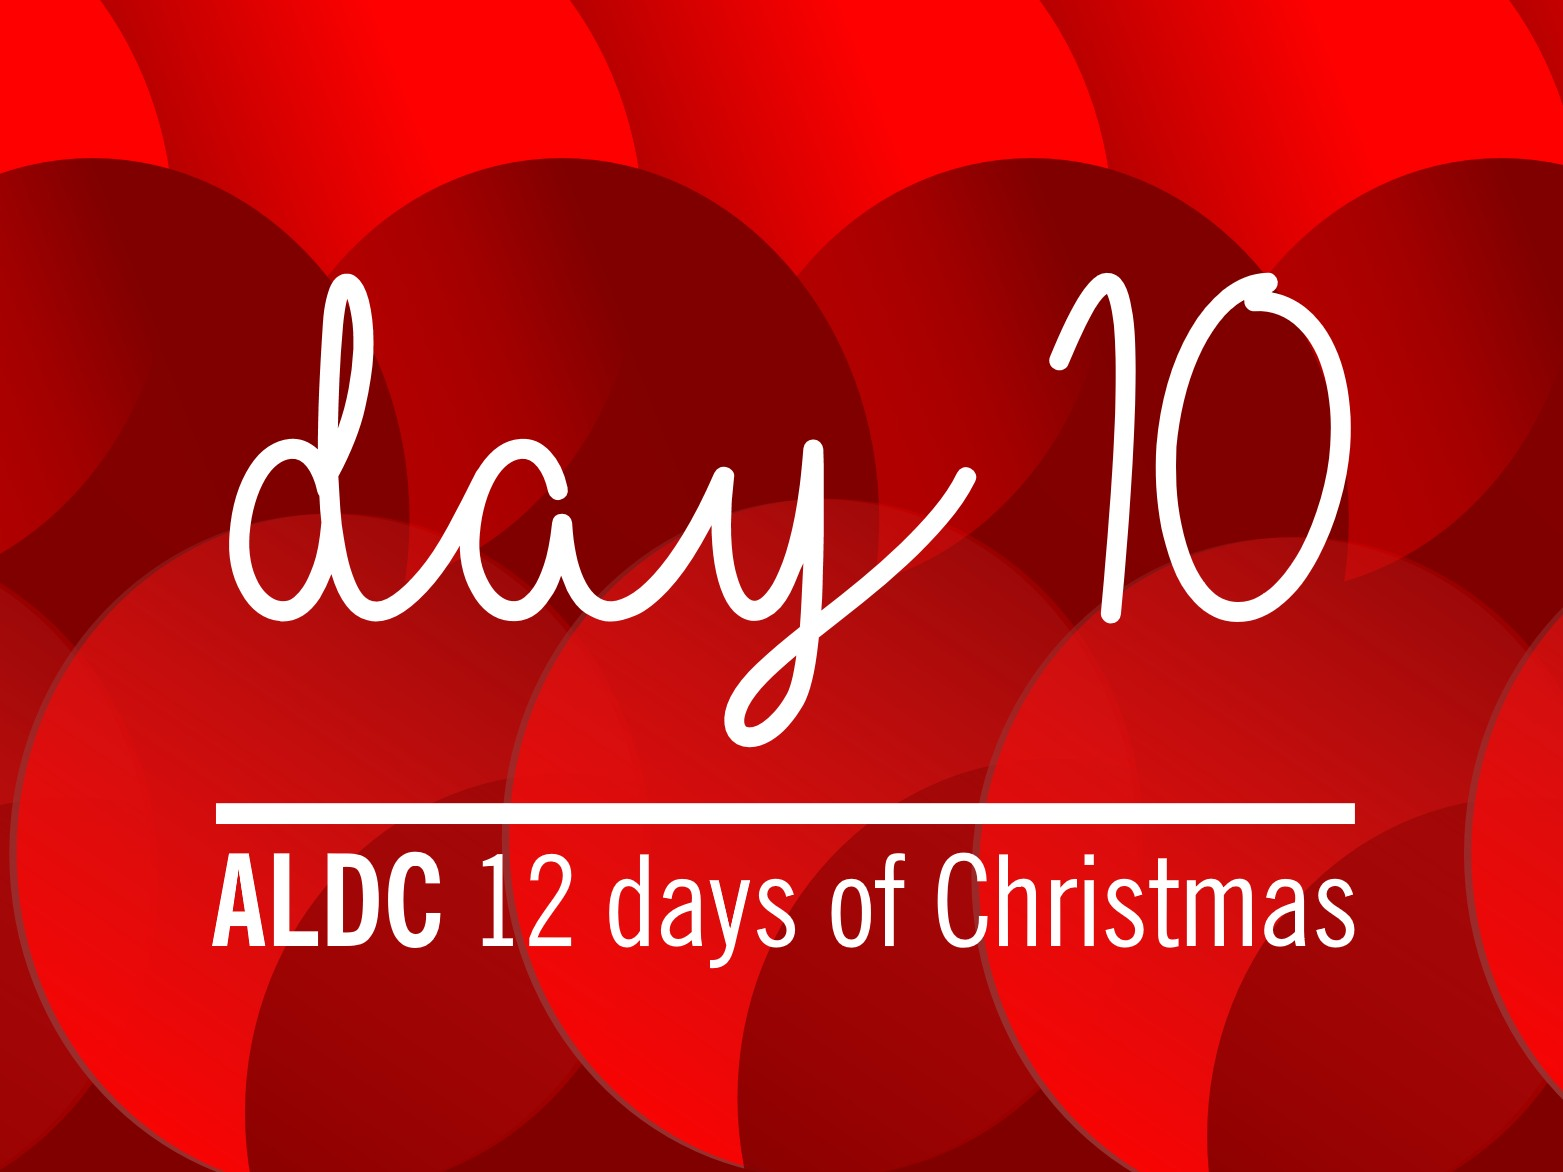 On the tenth day of Christmas, ALDC gave to me…